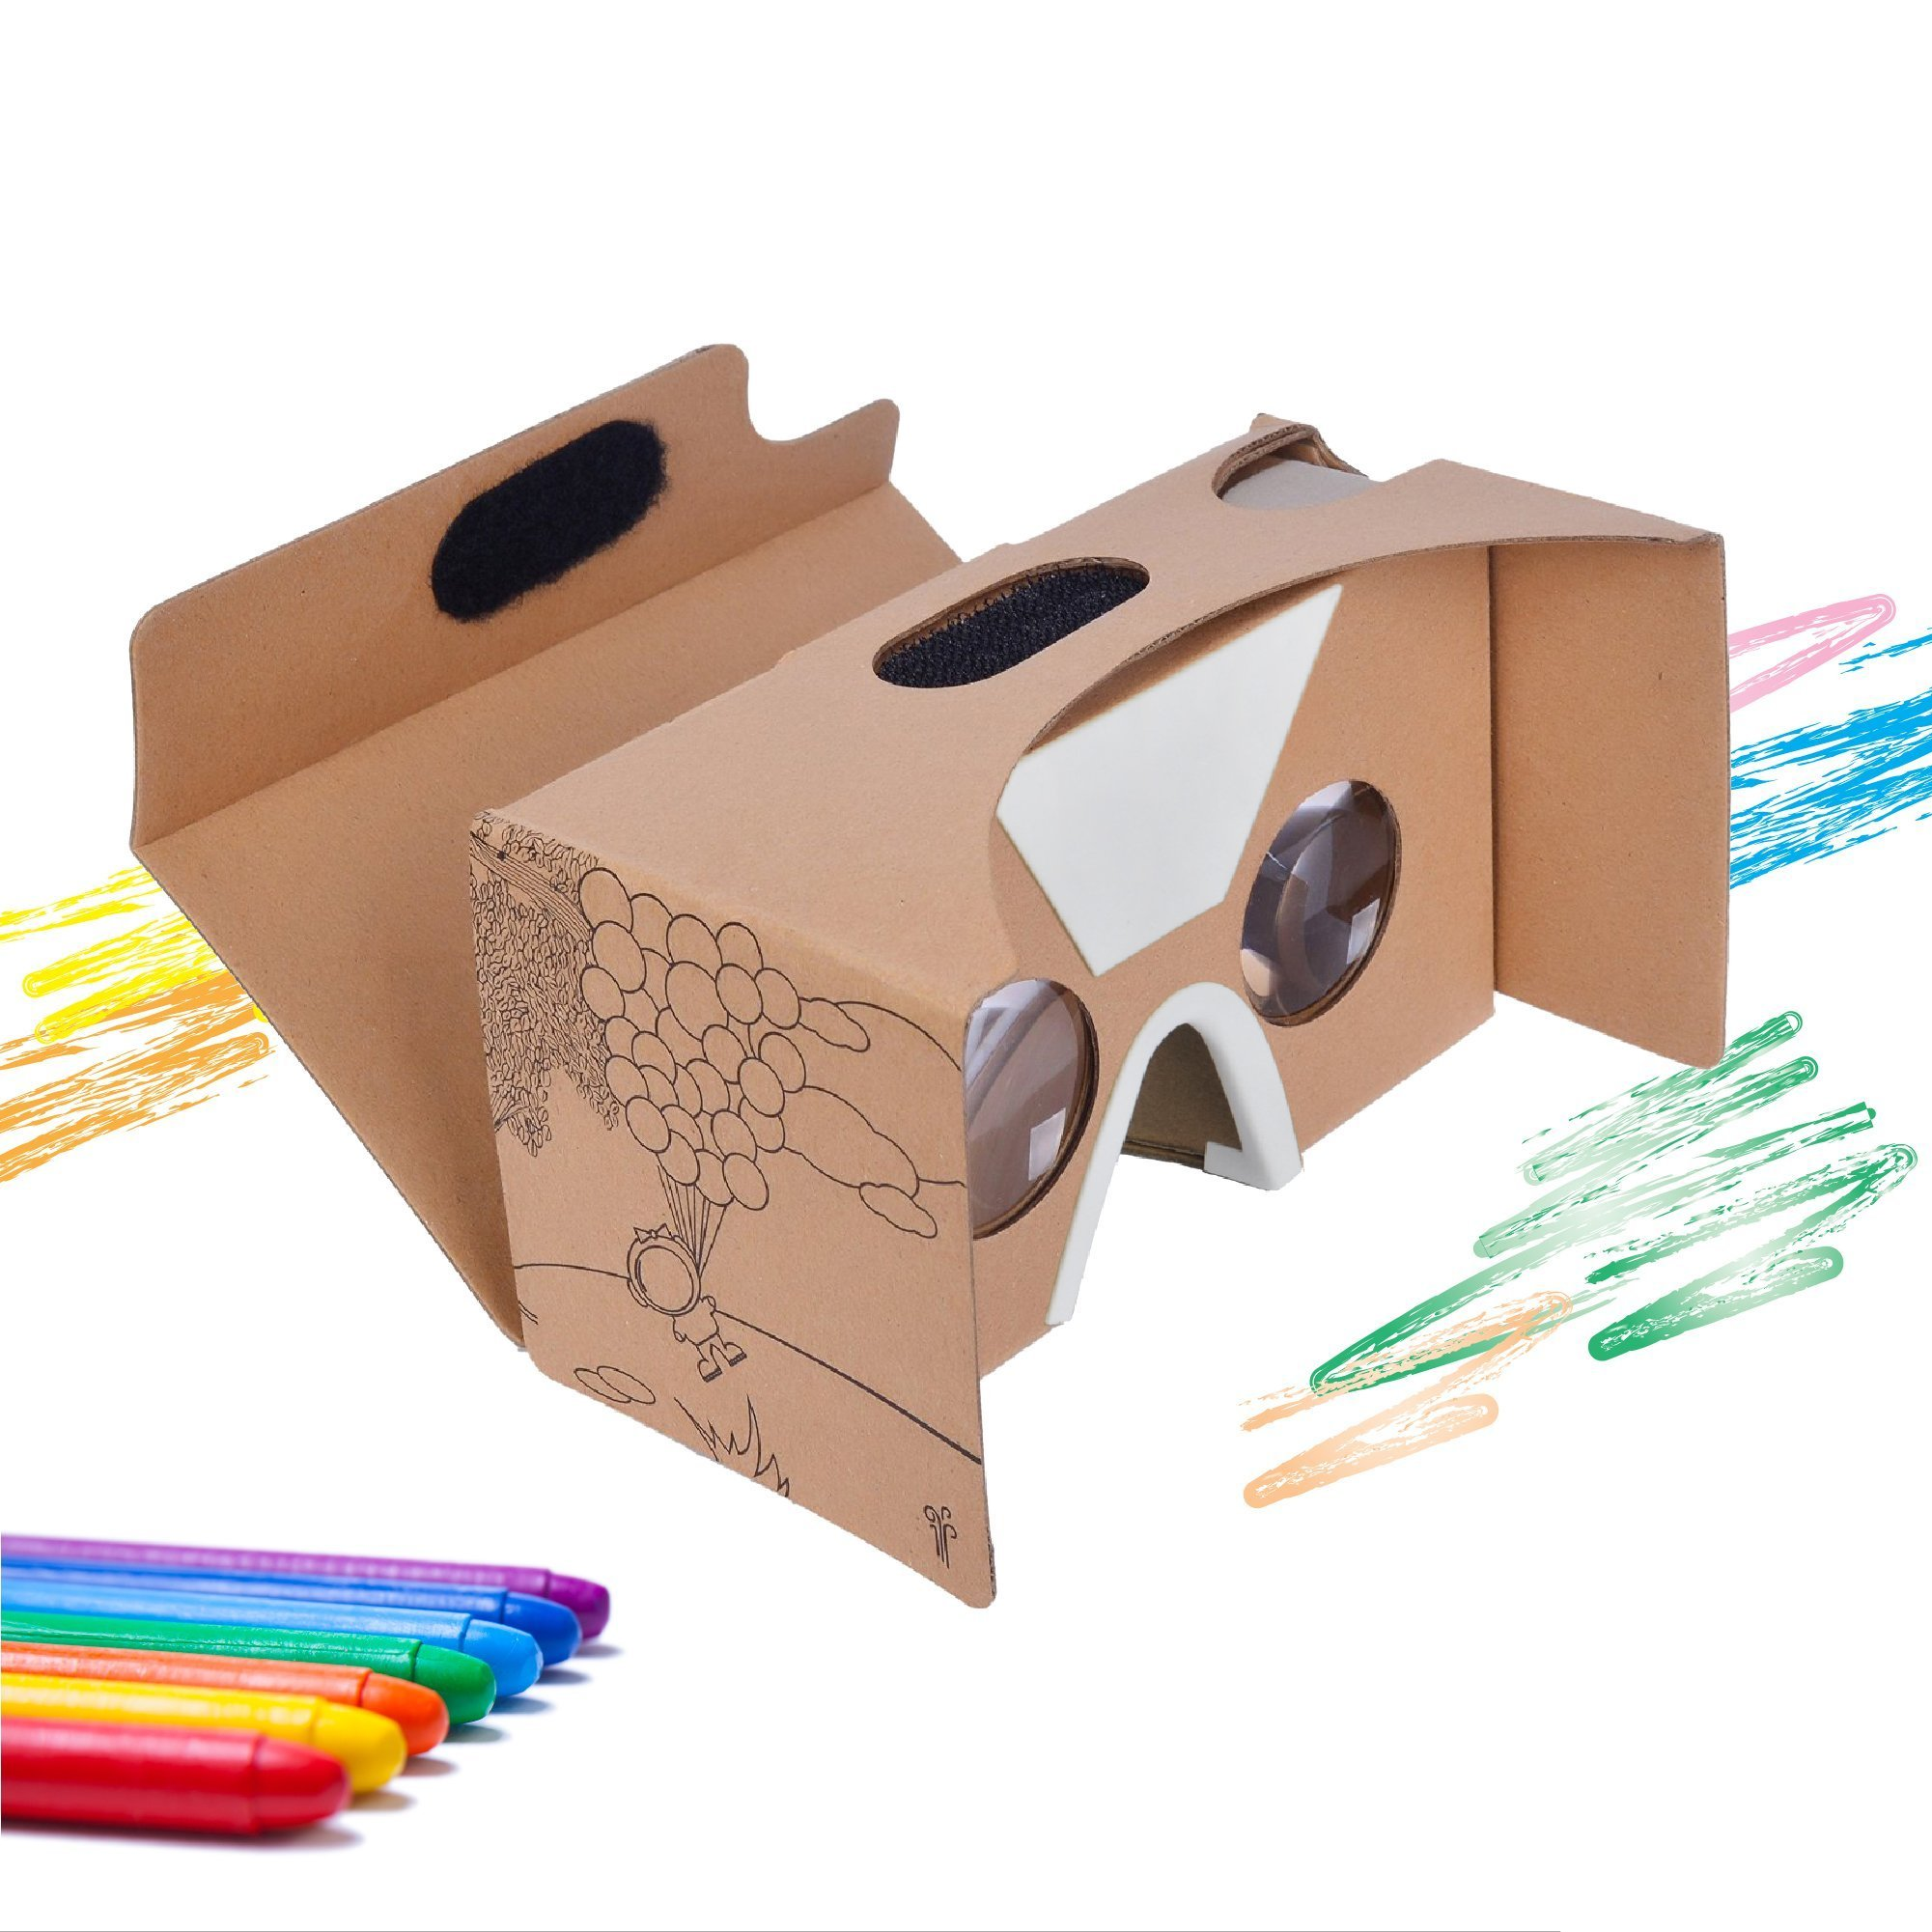 CardboardKid Google Cardboard V2 Virtual Reality Headset Kids Friendly, Fun 3D Viewer, Exciting and Educational, Recommended Apps, Compatible with All iPhone and Android Smartphones (Max 6'') by CardboardKid